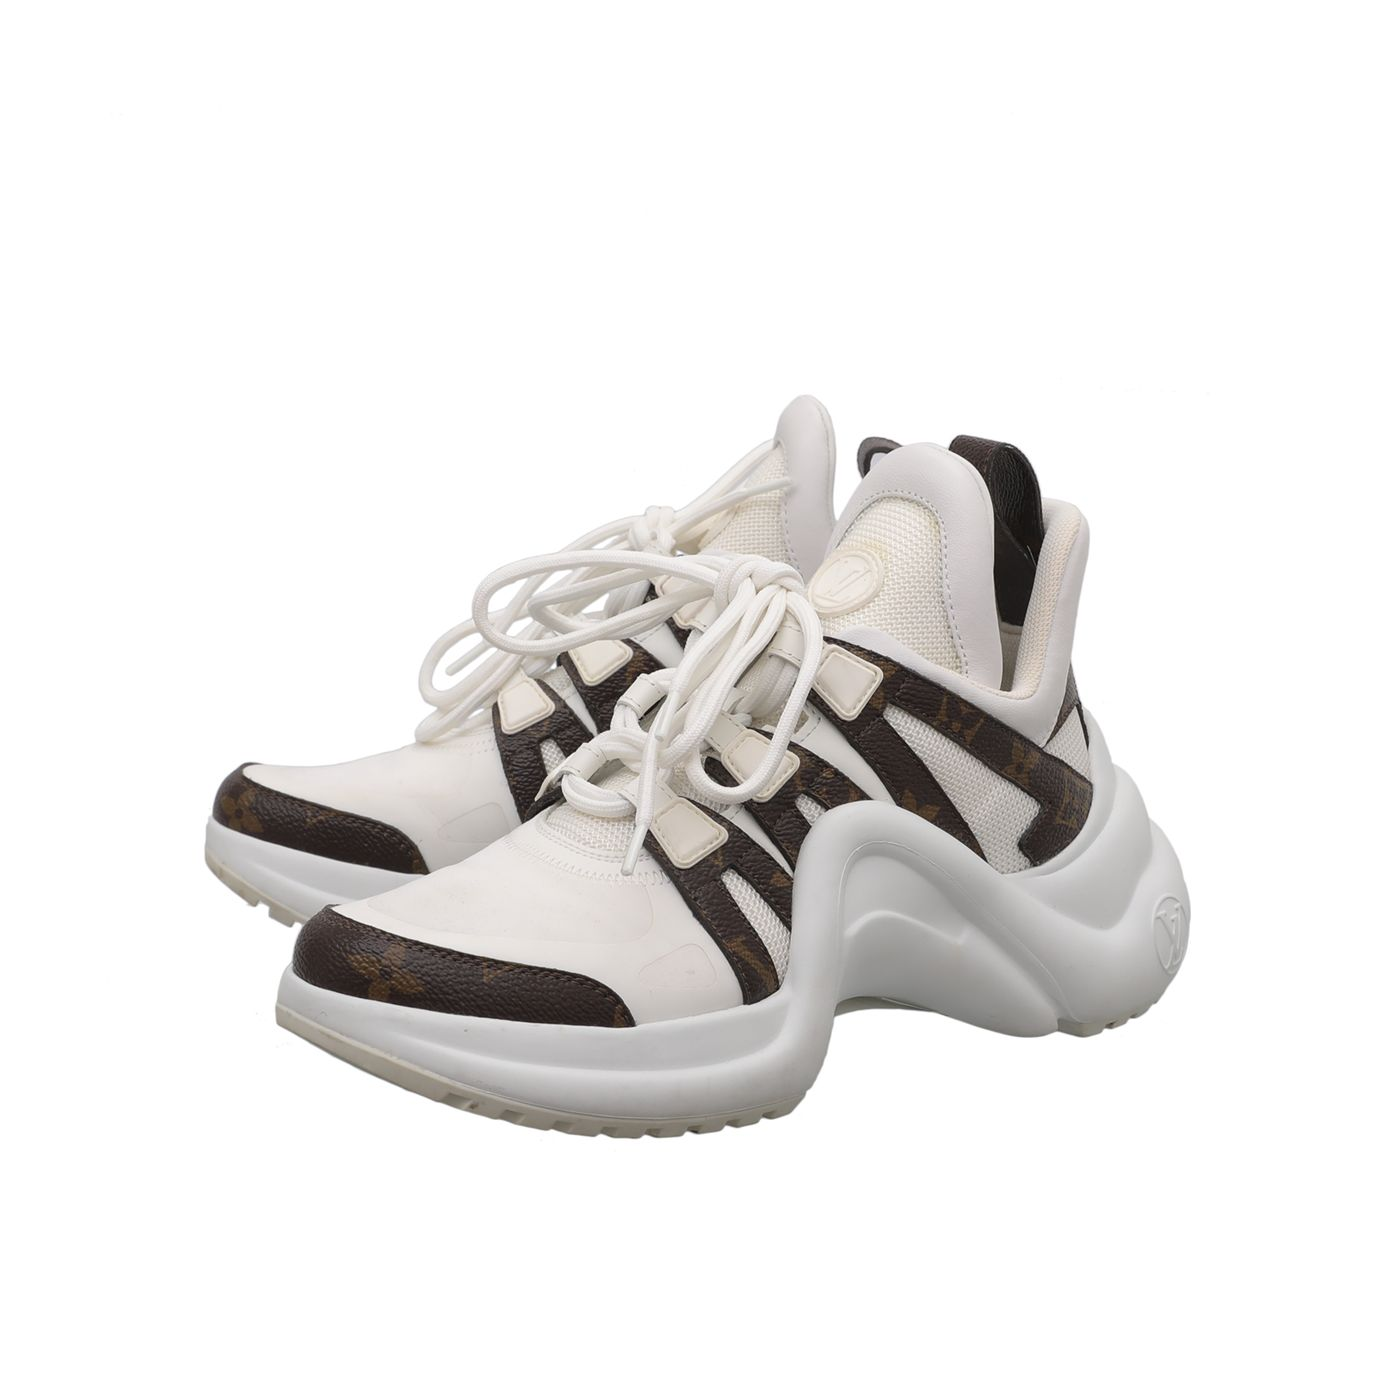 Louis Vuitton Bicolor Archlight Trainer Sneakers 36.5